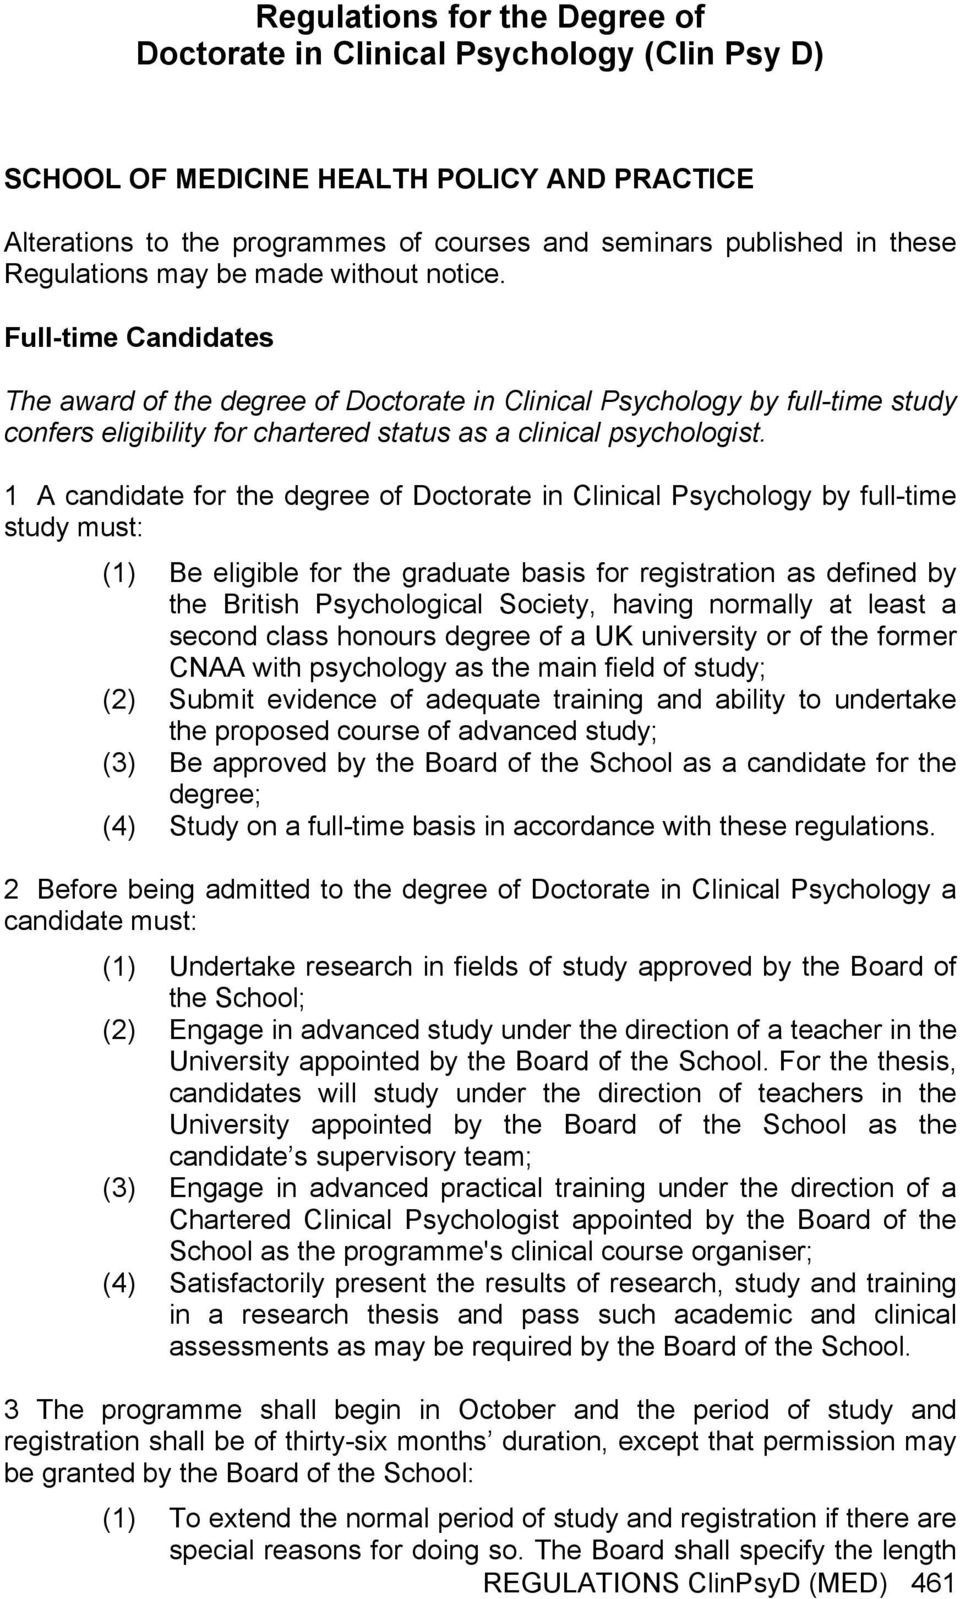 Full-time Candidates The award of the degree of Doctorate in Clinical Psychology by full-time study confers eligibility for chartered status as a clinical psychologist.